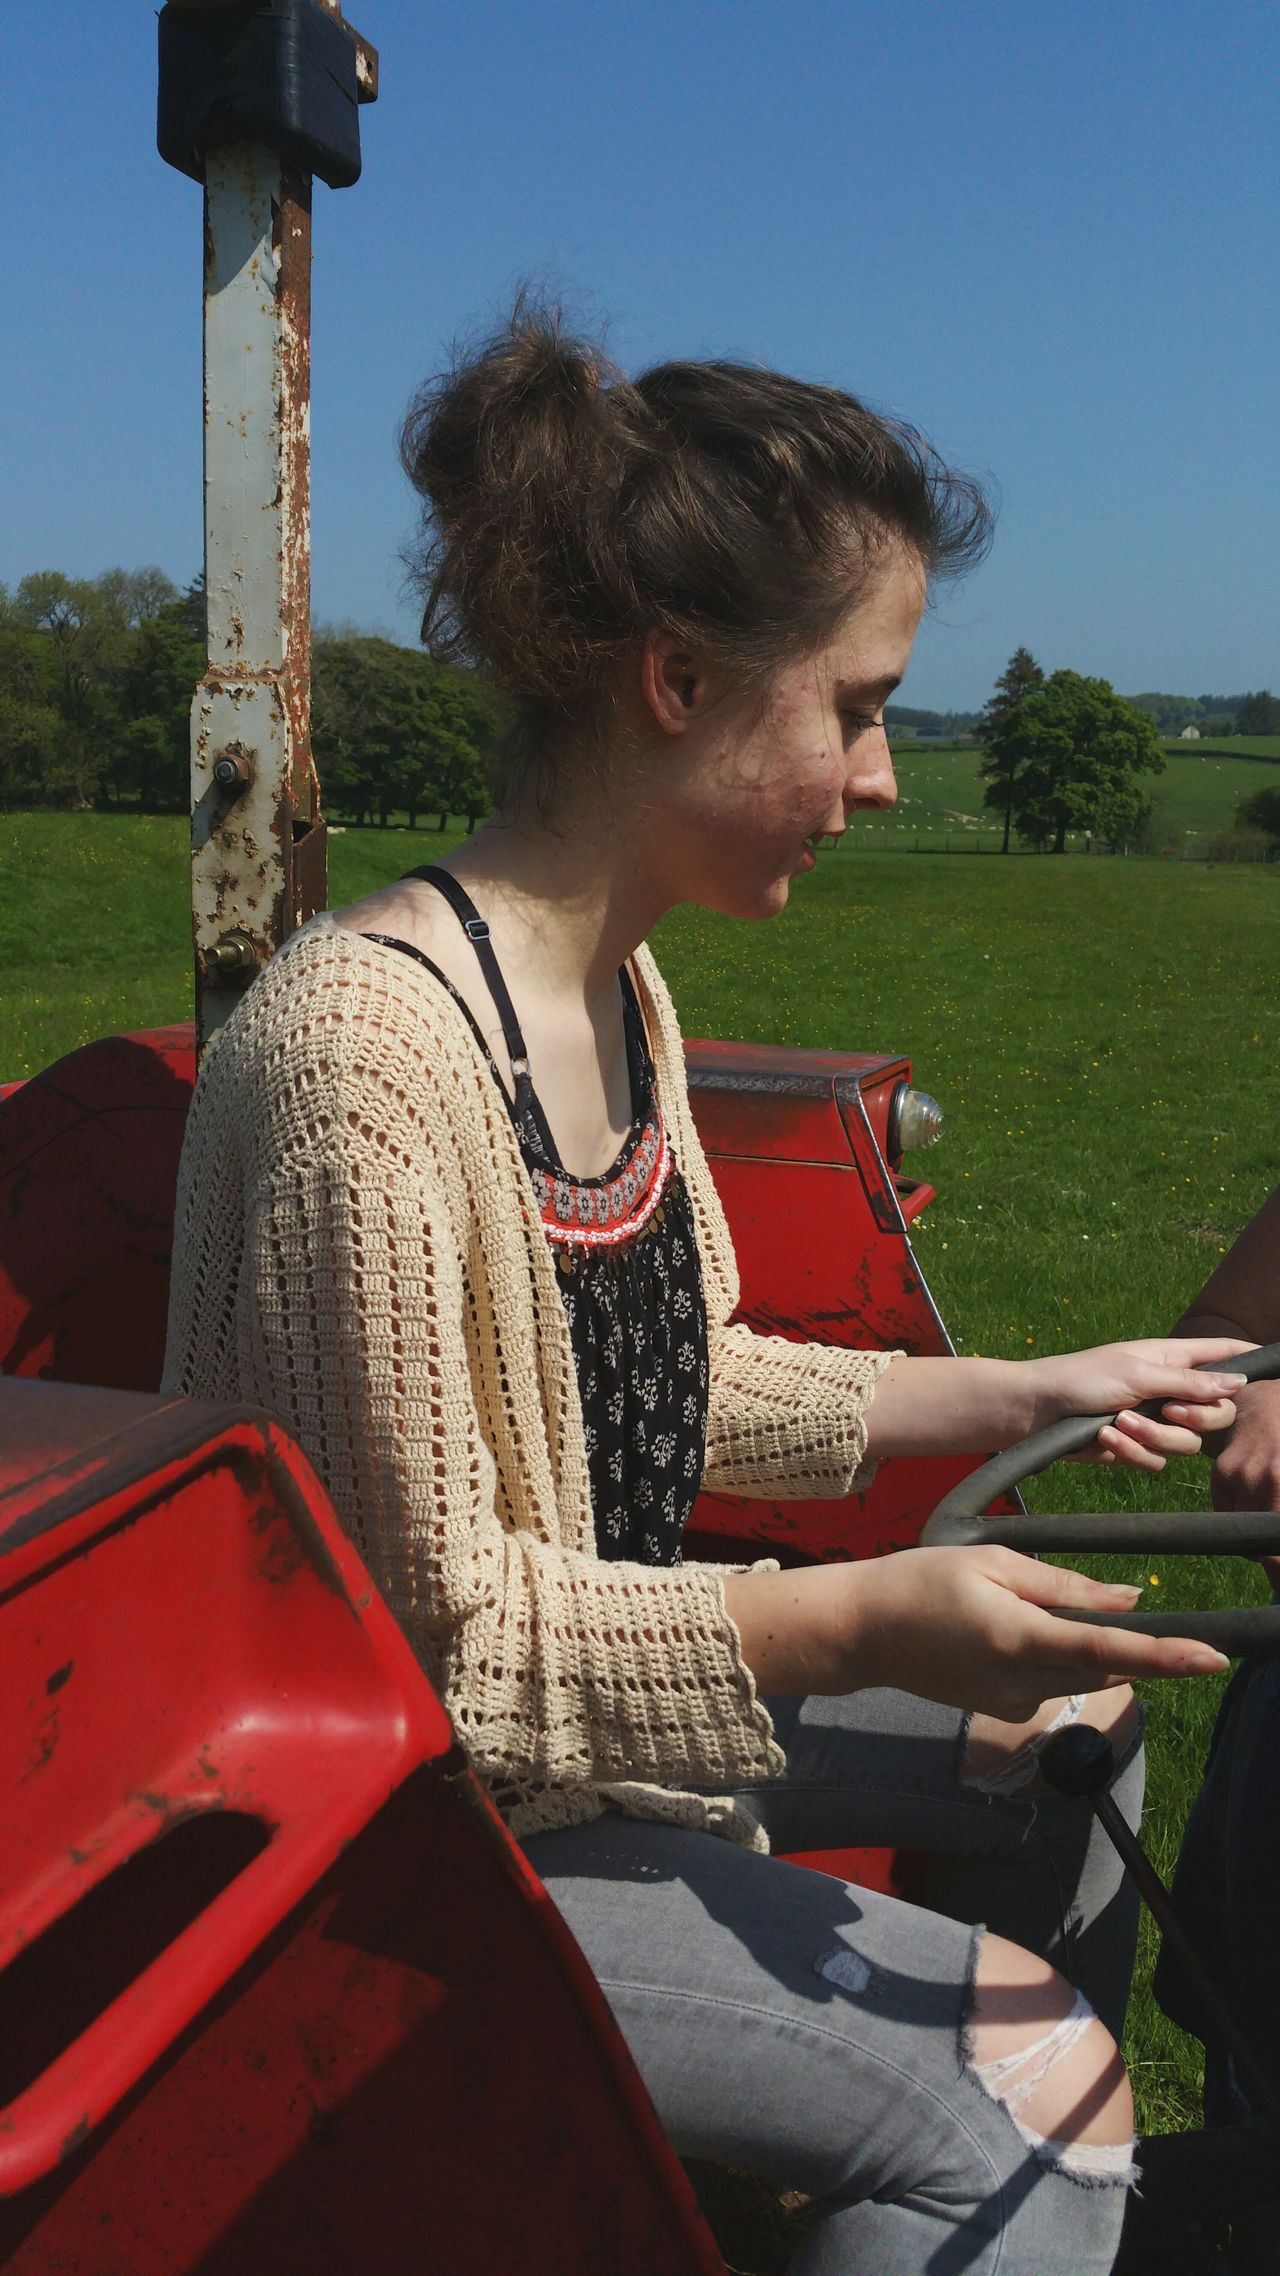 Learning To Drive Tractor Sunlight Outdoors Young Adult One Woman Only Day One Person Only Women People One Young Woman Only Young Women Sky Farm Farmland First Lesson Farm Life Summer Wales Countryside Rural Pasture Grass Field Britain